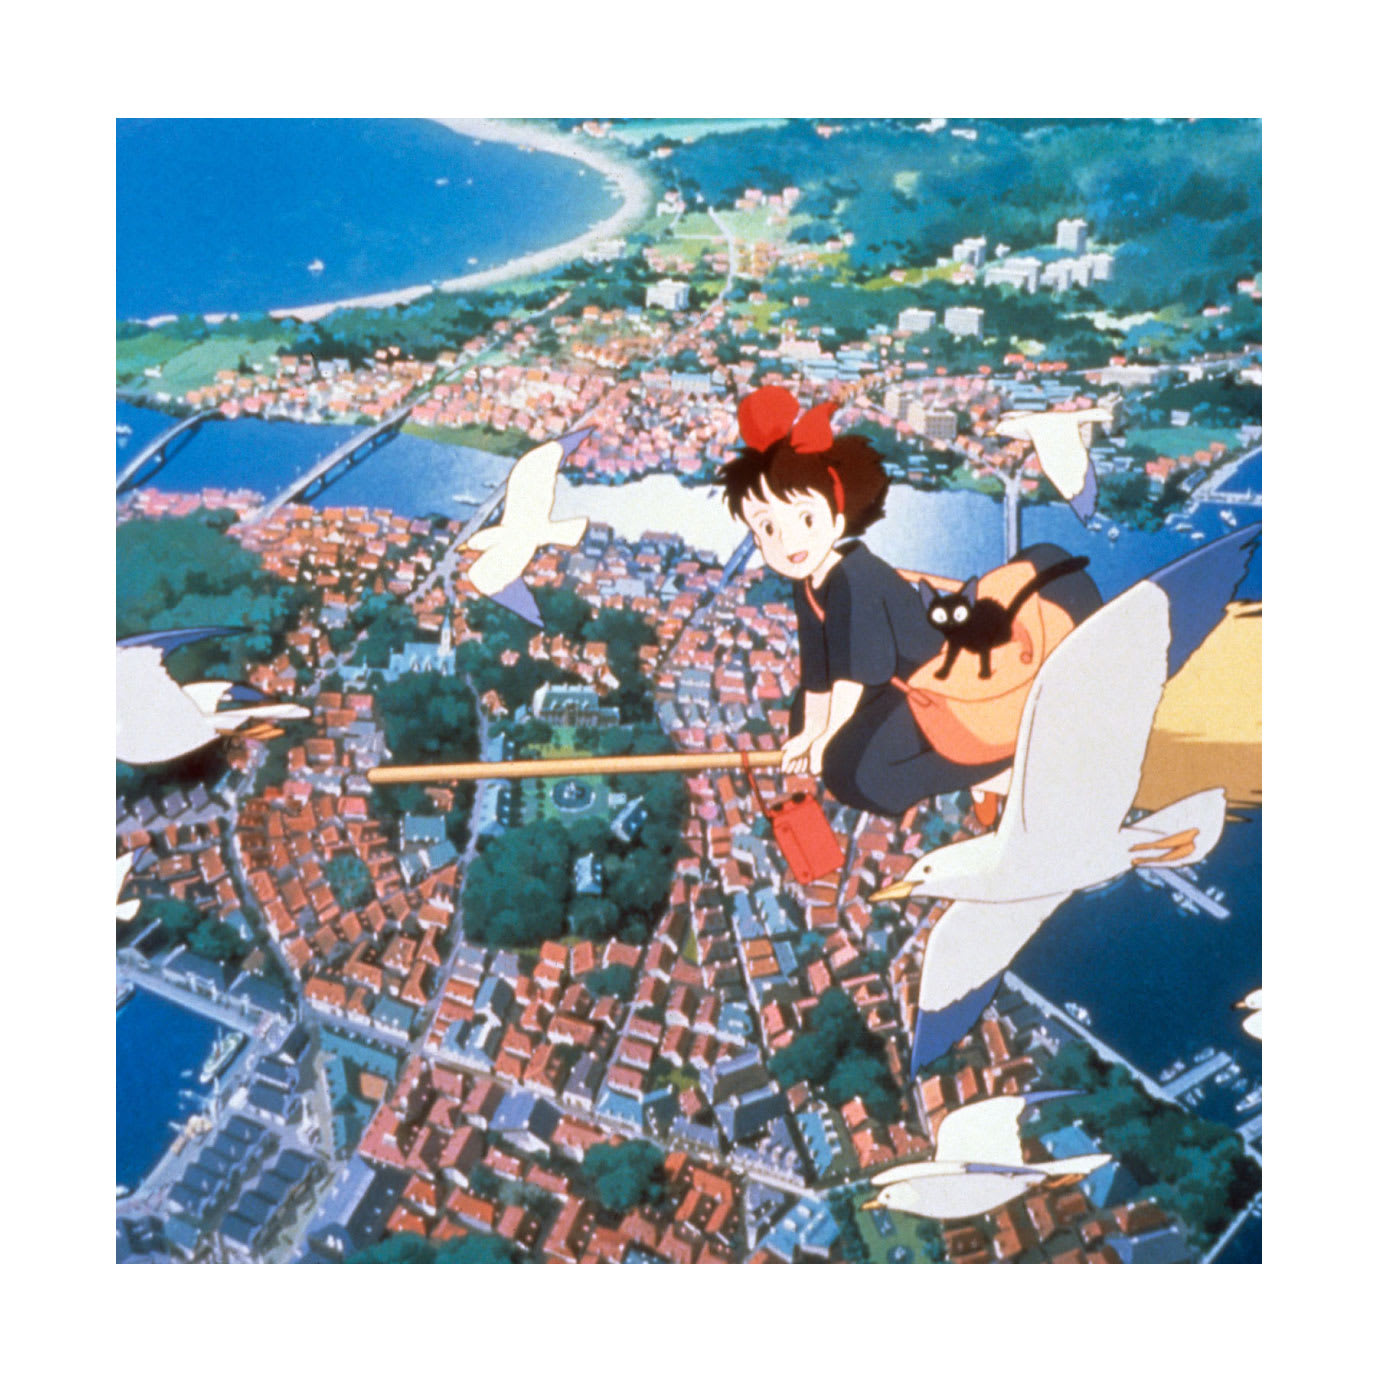 A cartoon of a girl flying above a city on a broomstick.